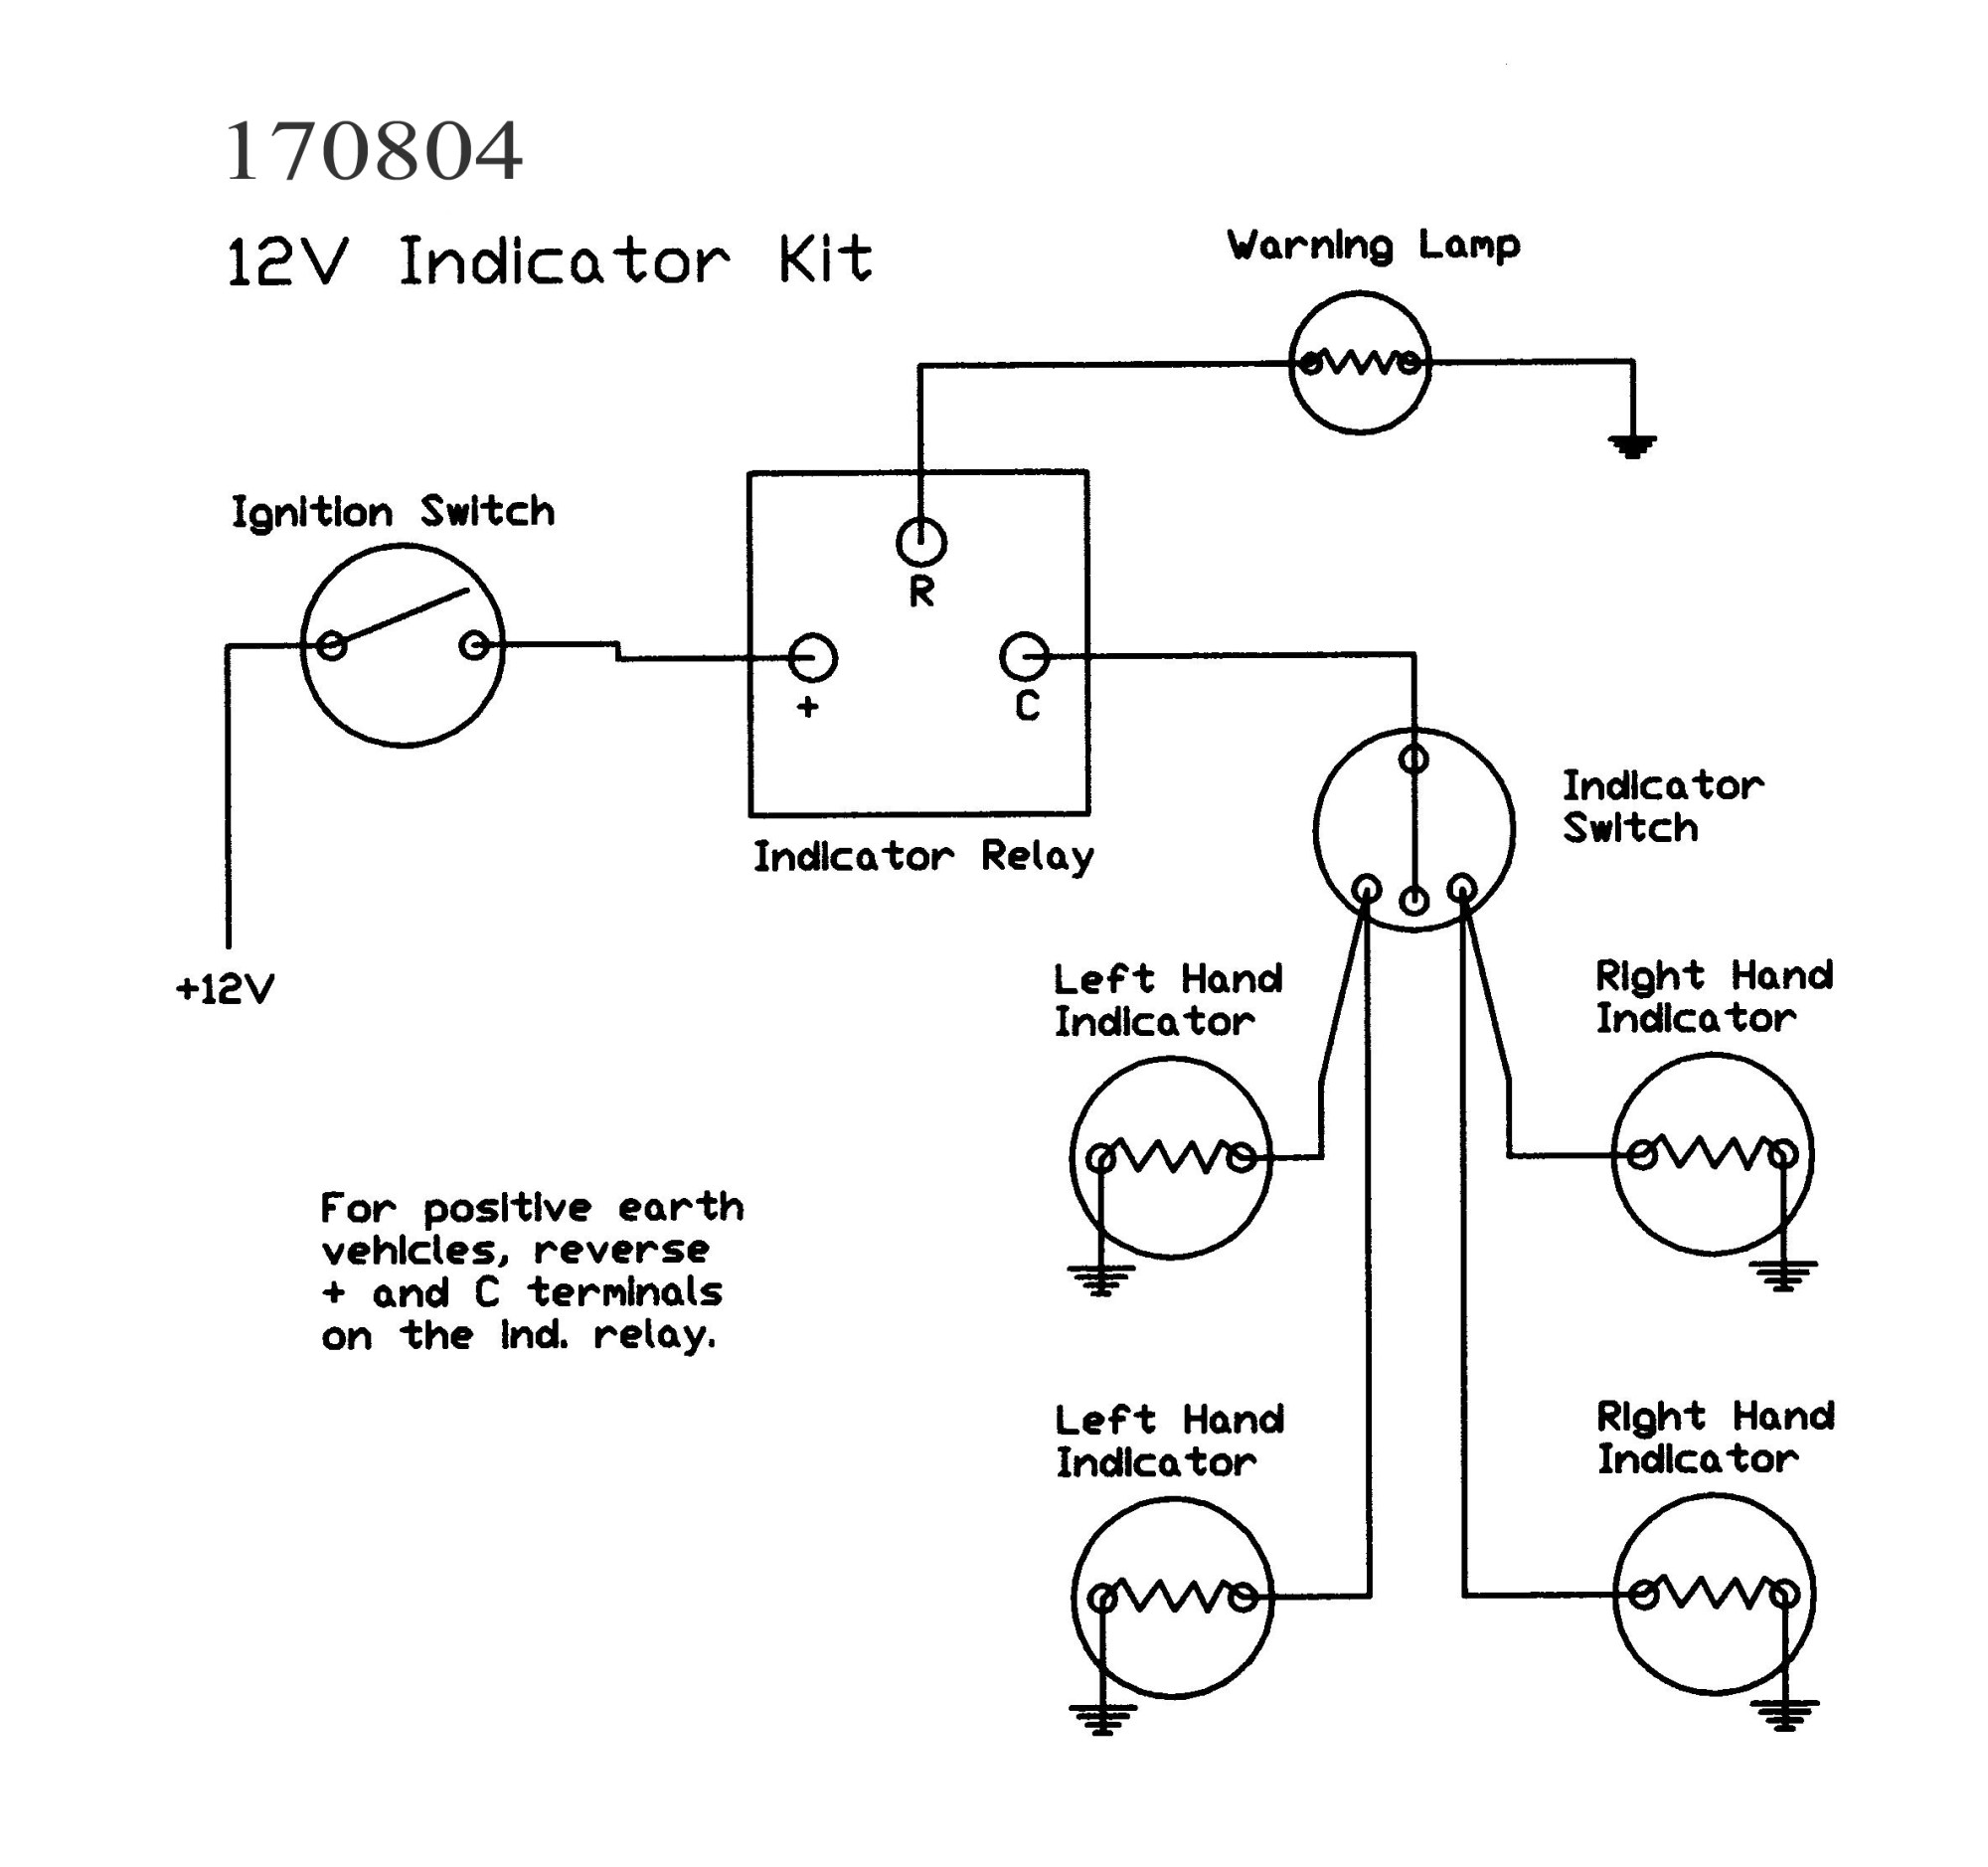 hight resolution of diagram showing how to wire a simple switch with an indicator light diagram showing how to wire a simple switch with an indicator light